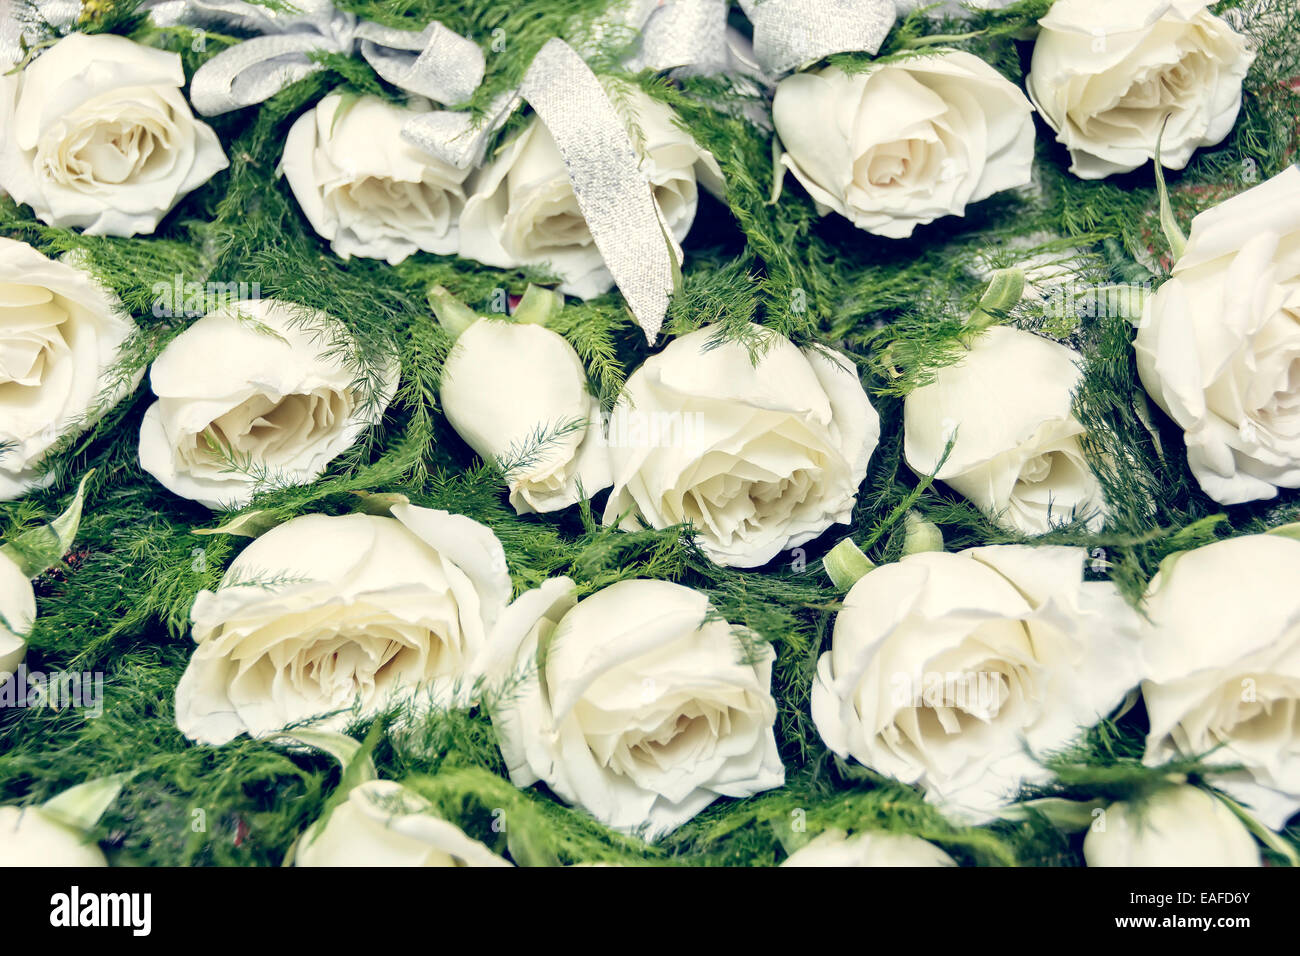 rows of white rose boutonniere for wedding entourage - Garden Rose Boutonniere